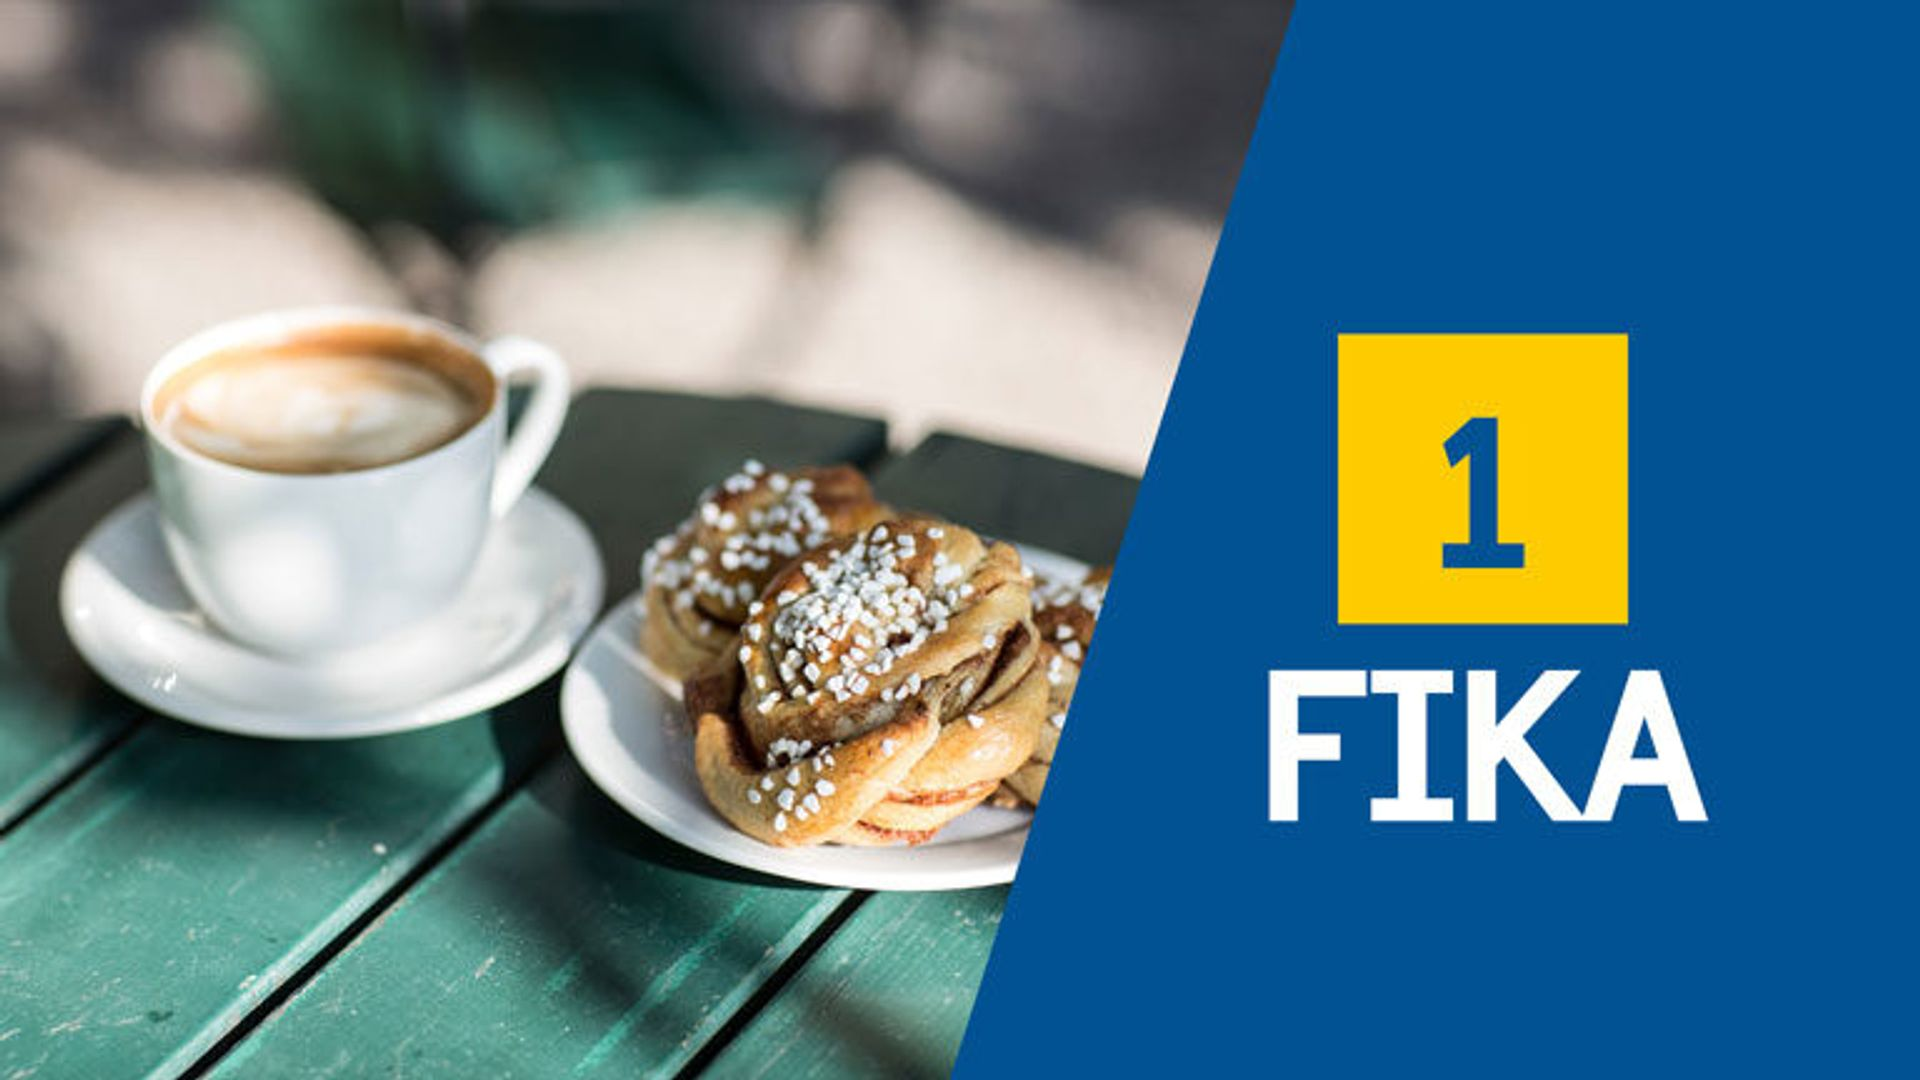 01 Fika - Essentials if you are coming to Sweden